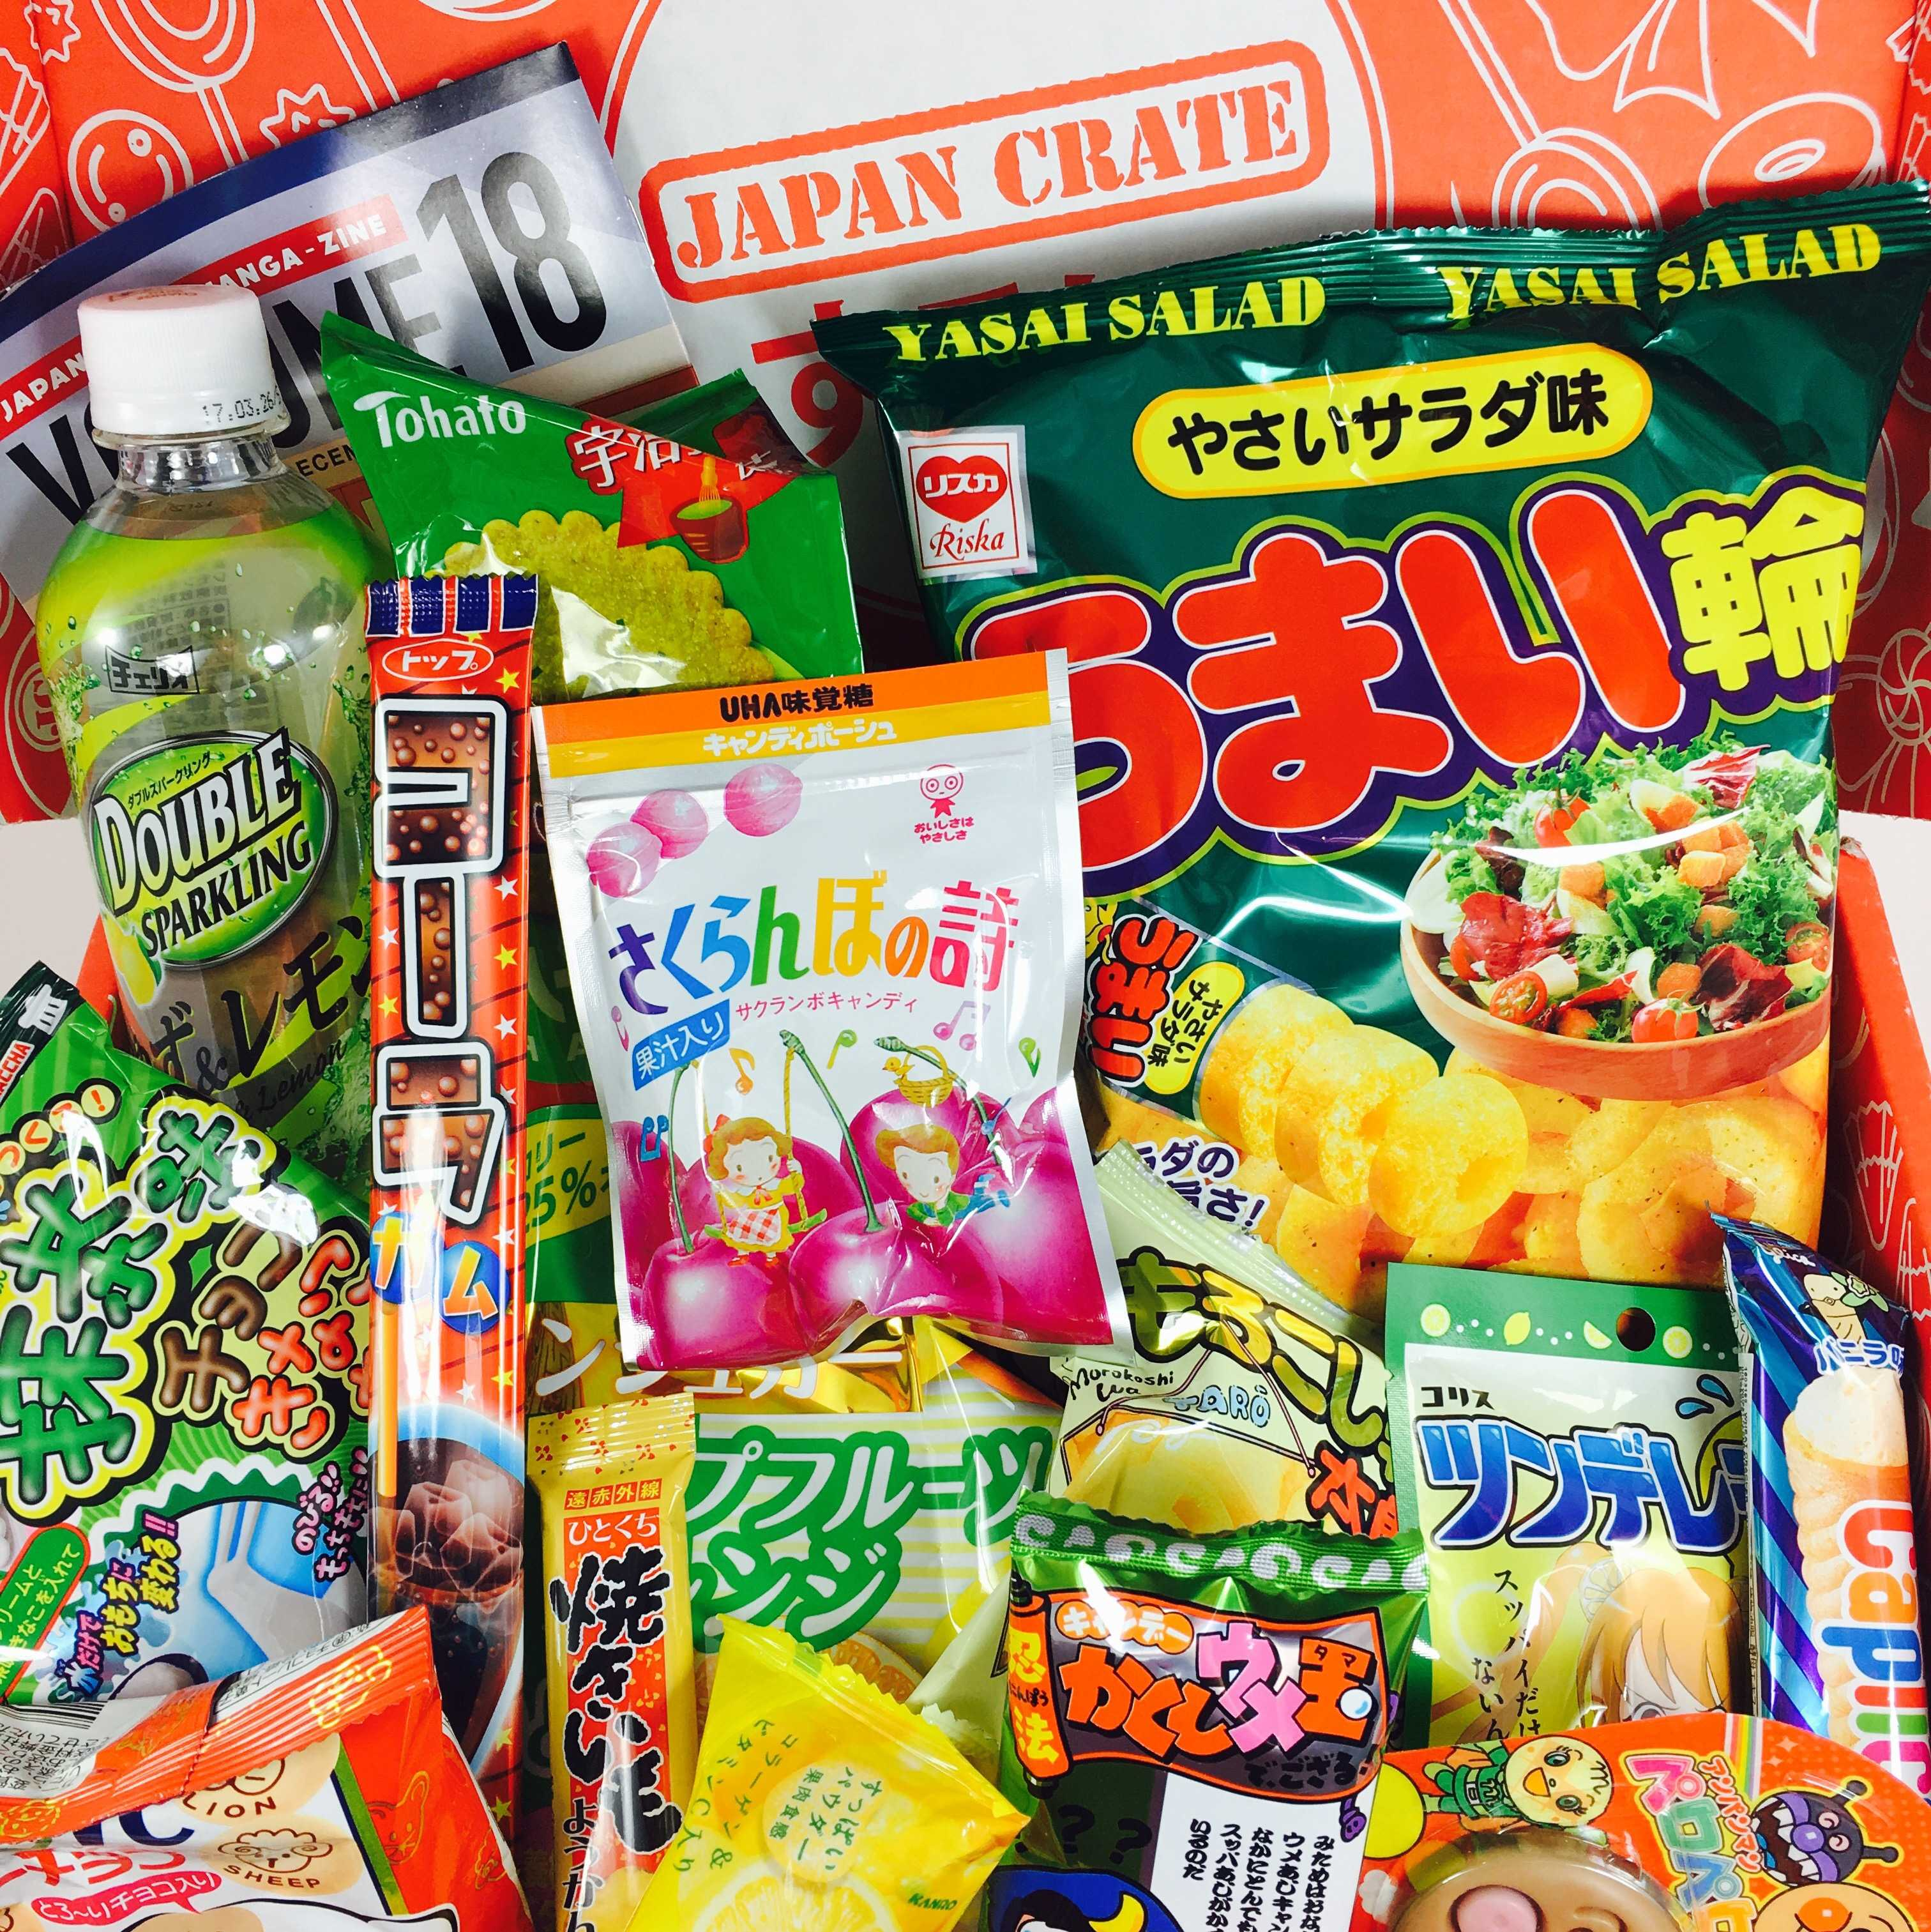 Japan Crate December 2016 Subscription Box Review + Coupon